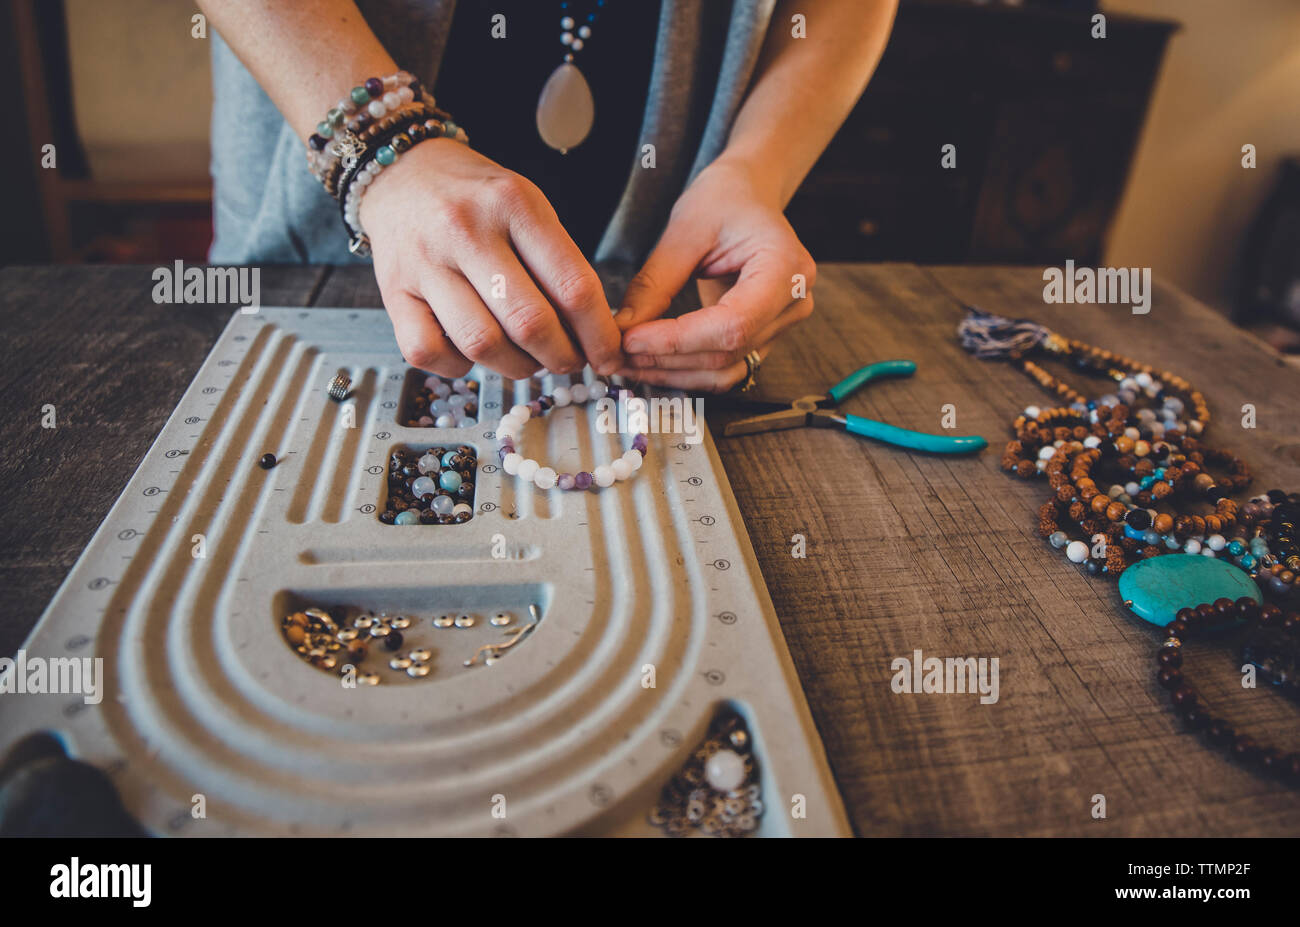 Midsection of woman using beading board while making bracelets while standing by table at home - Stock Image